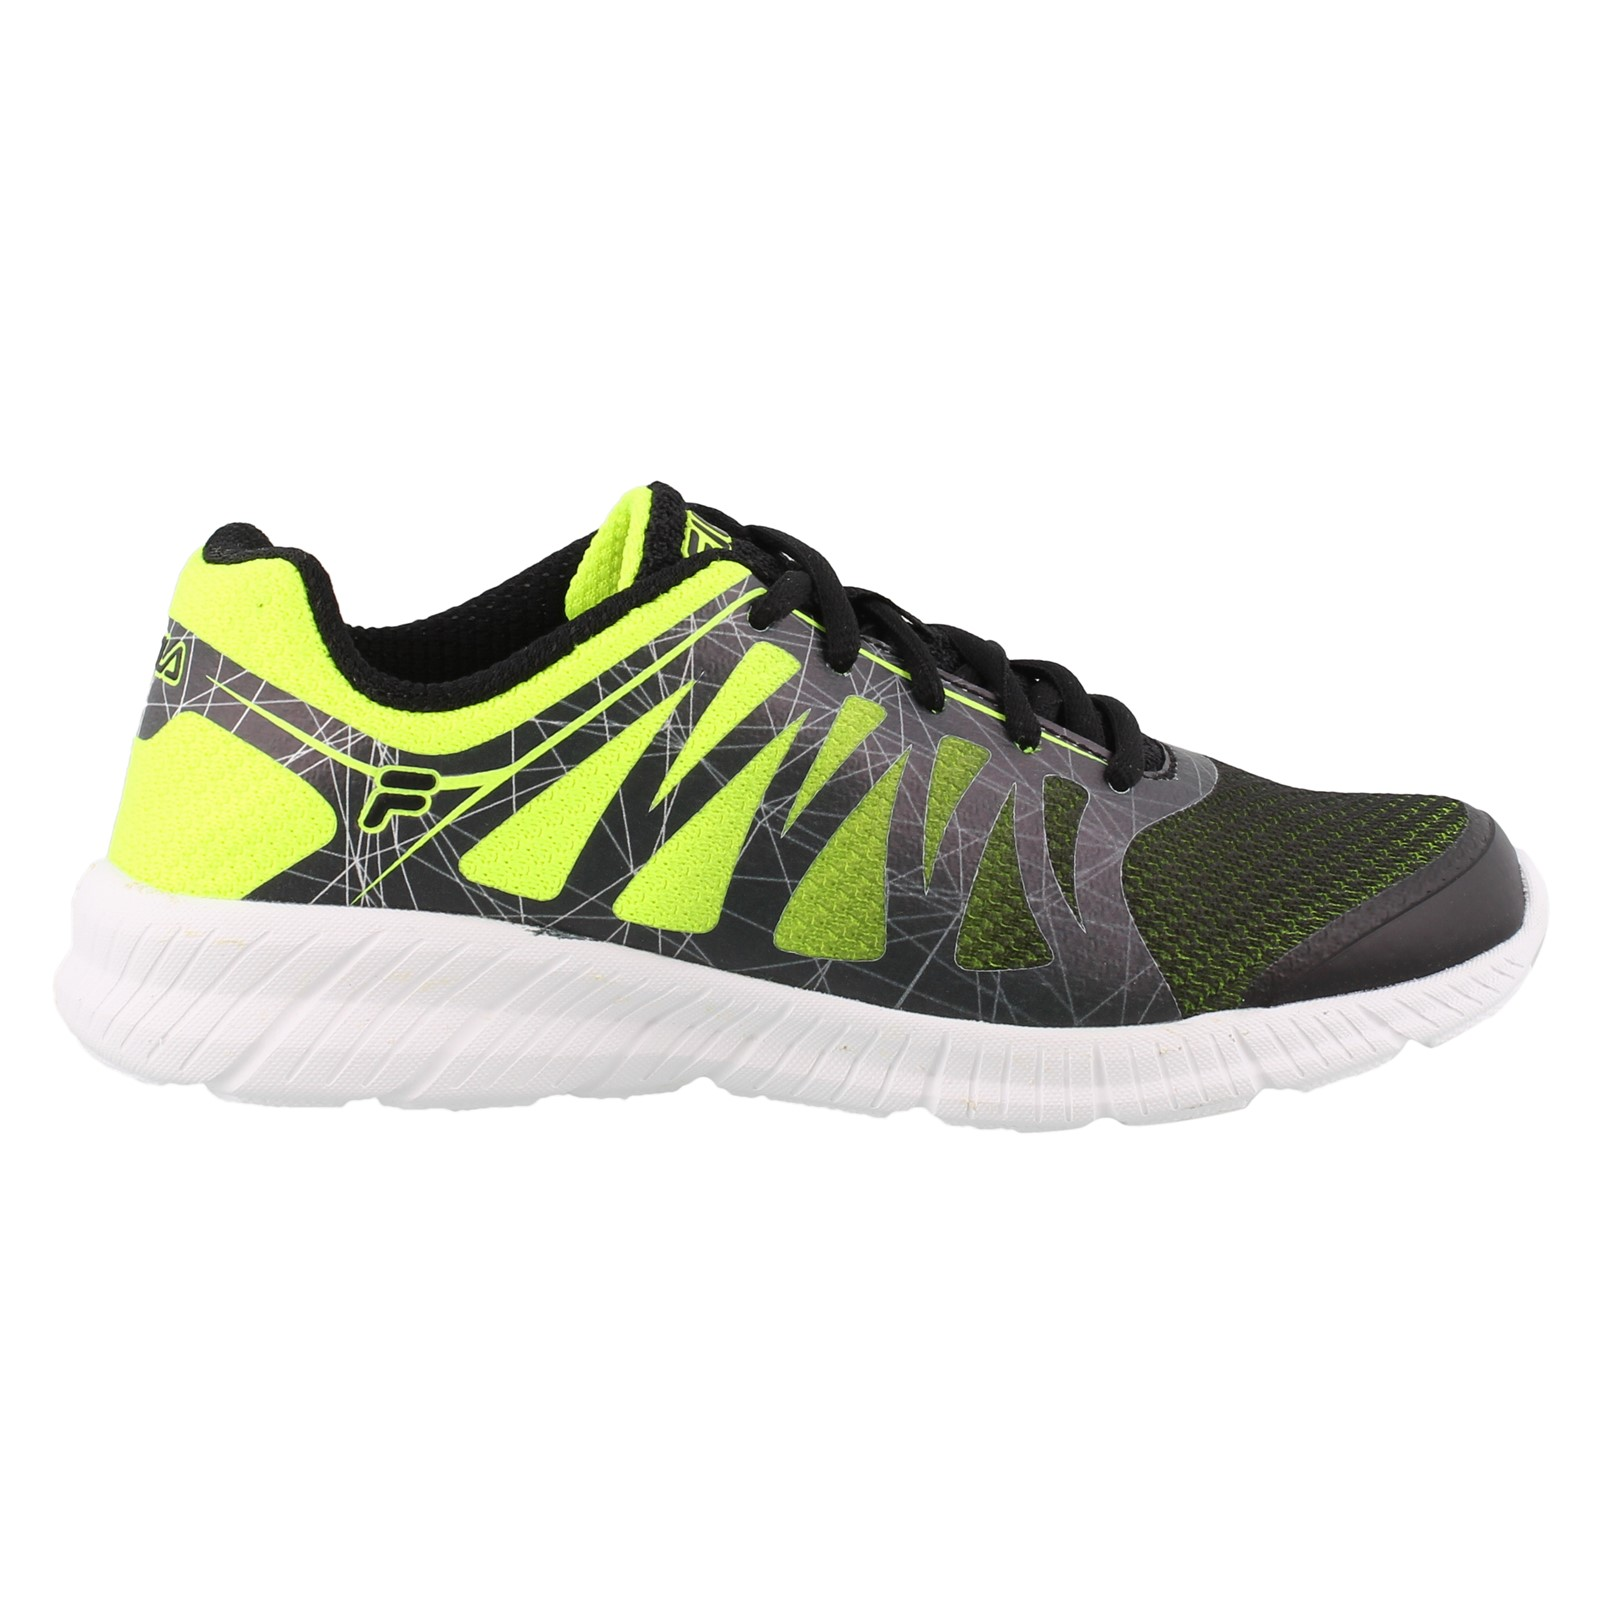 Boy's Fila, Finition 2 Lace up Sneakers